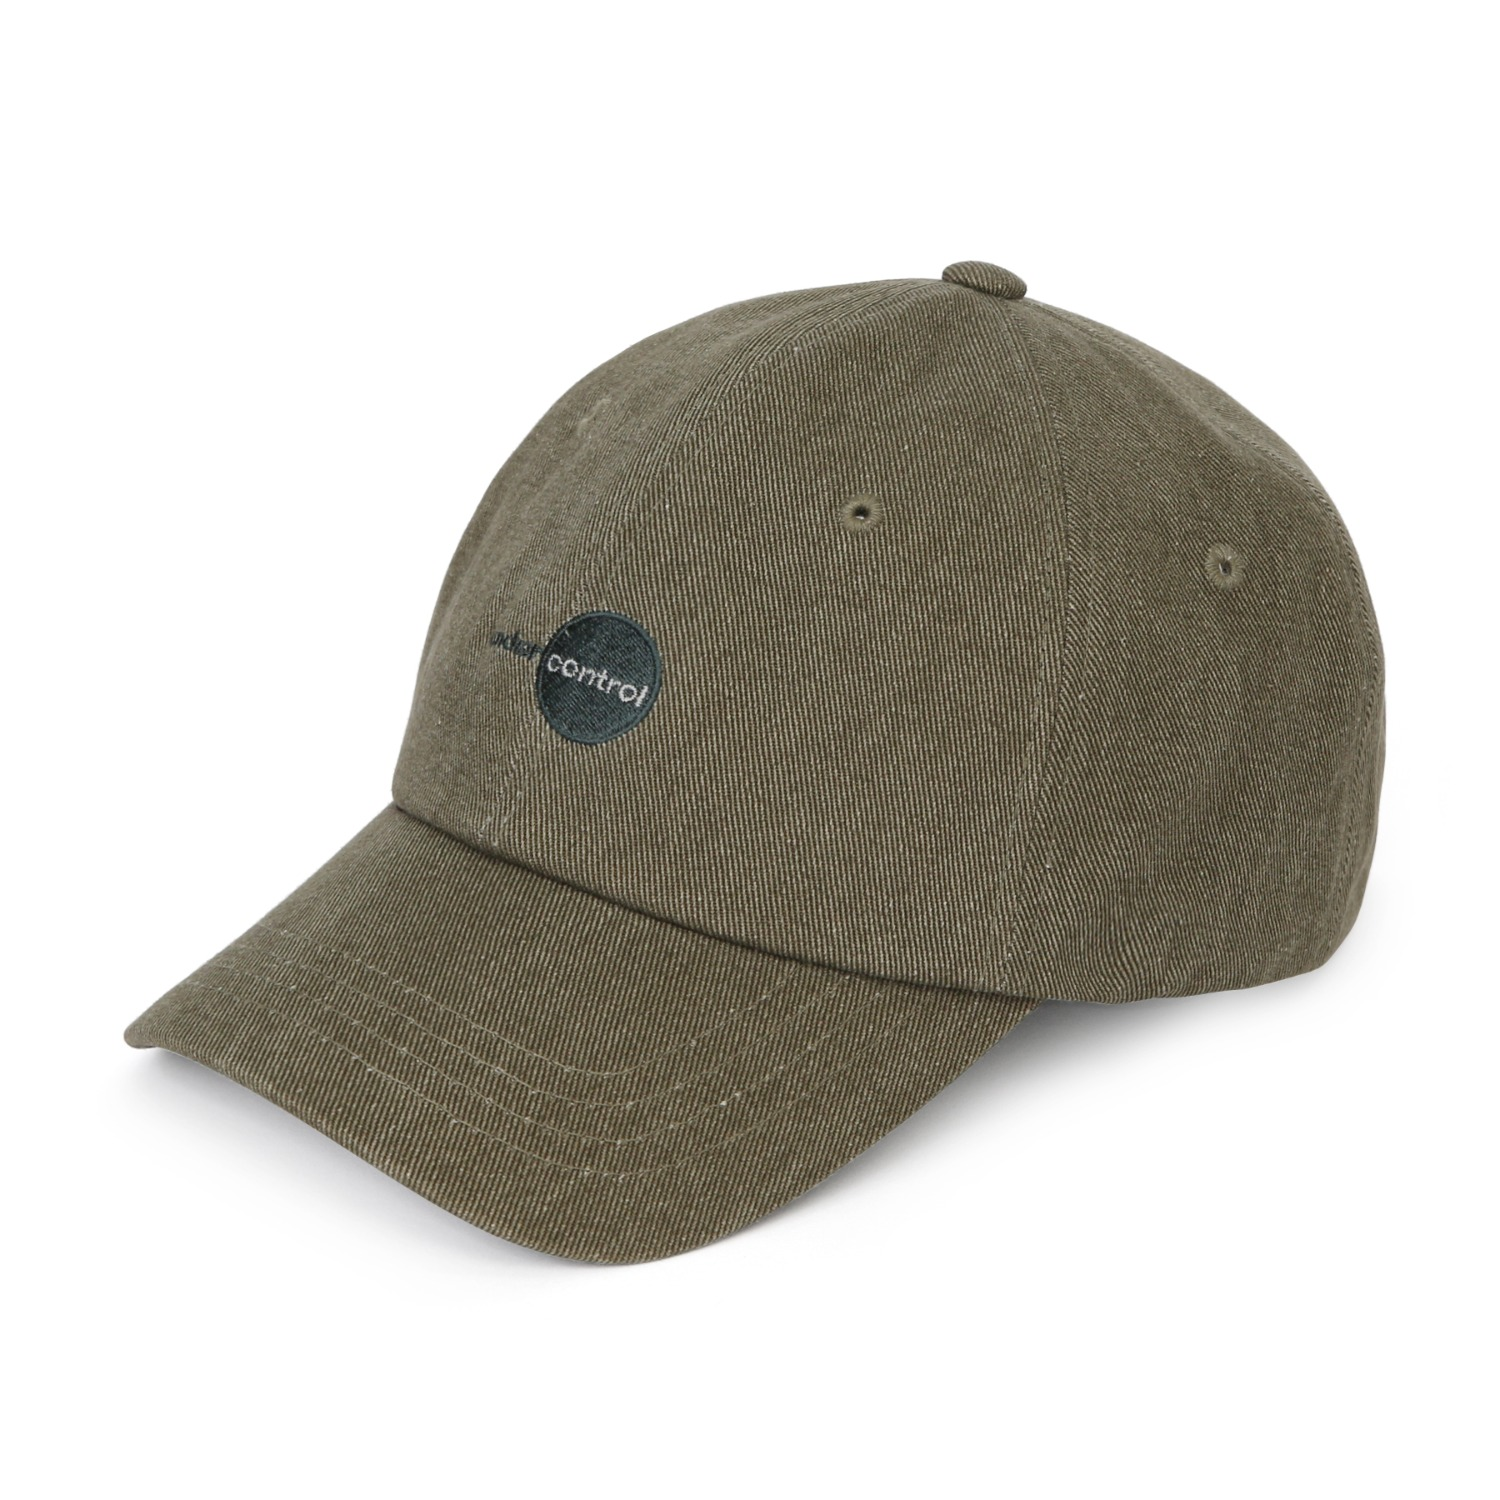 ROUND LOGO / AUTHENTIC B B / CATION KHAKI